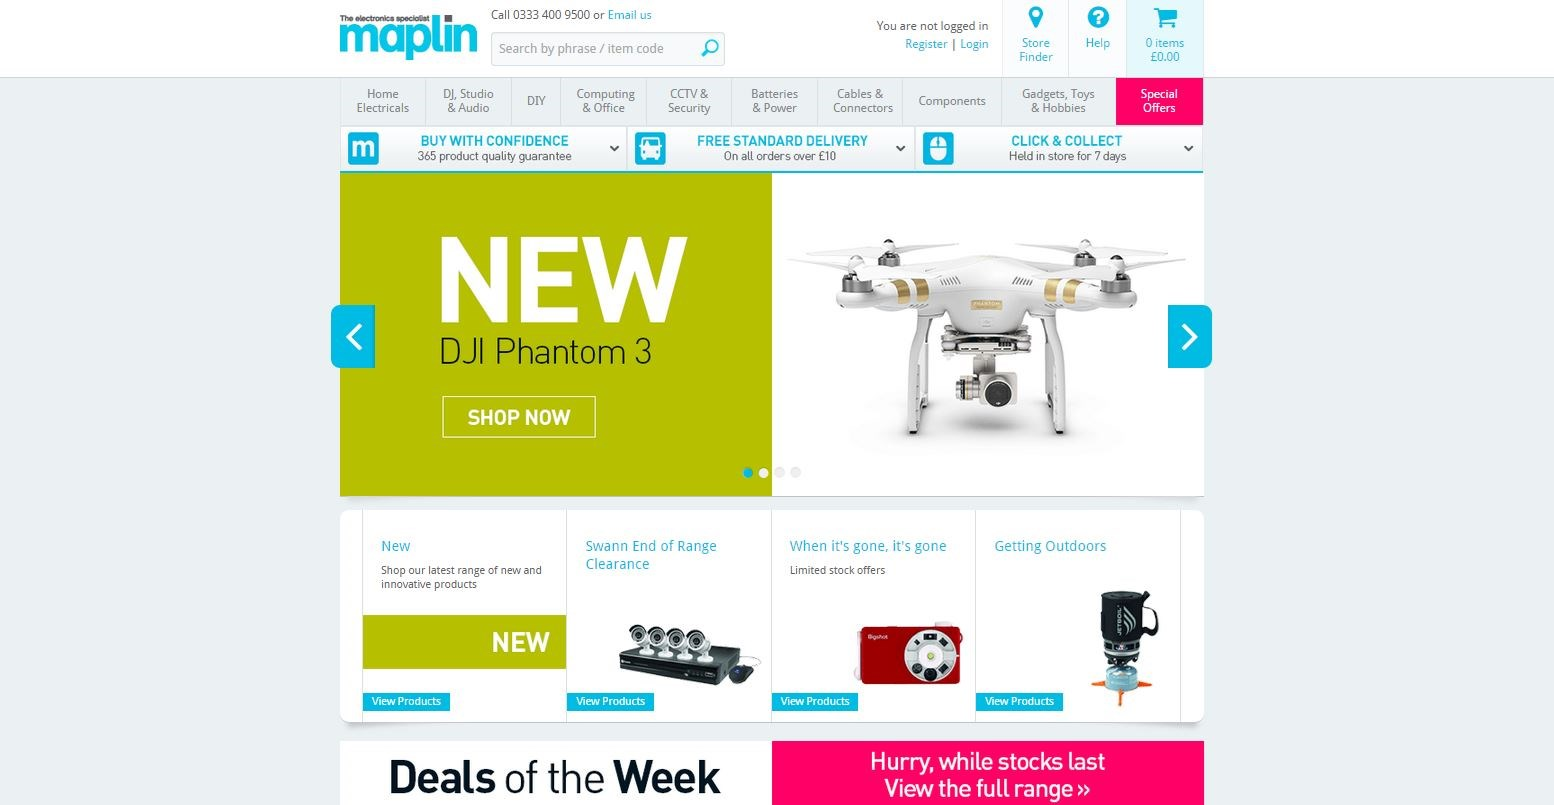 Applying a service-led approach to the Maplin eCommerce offering